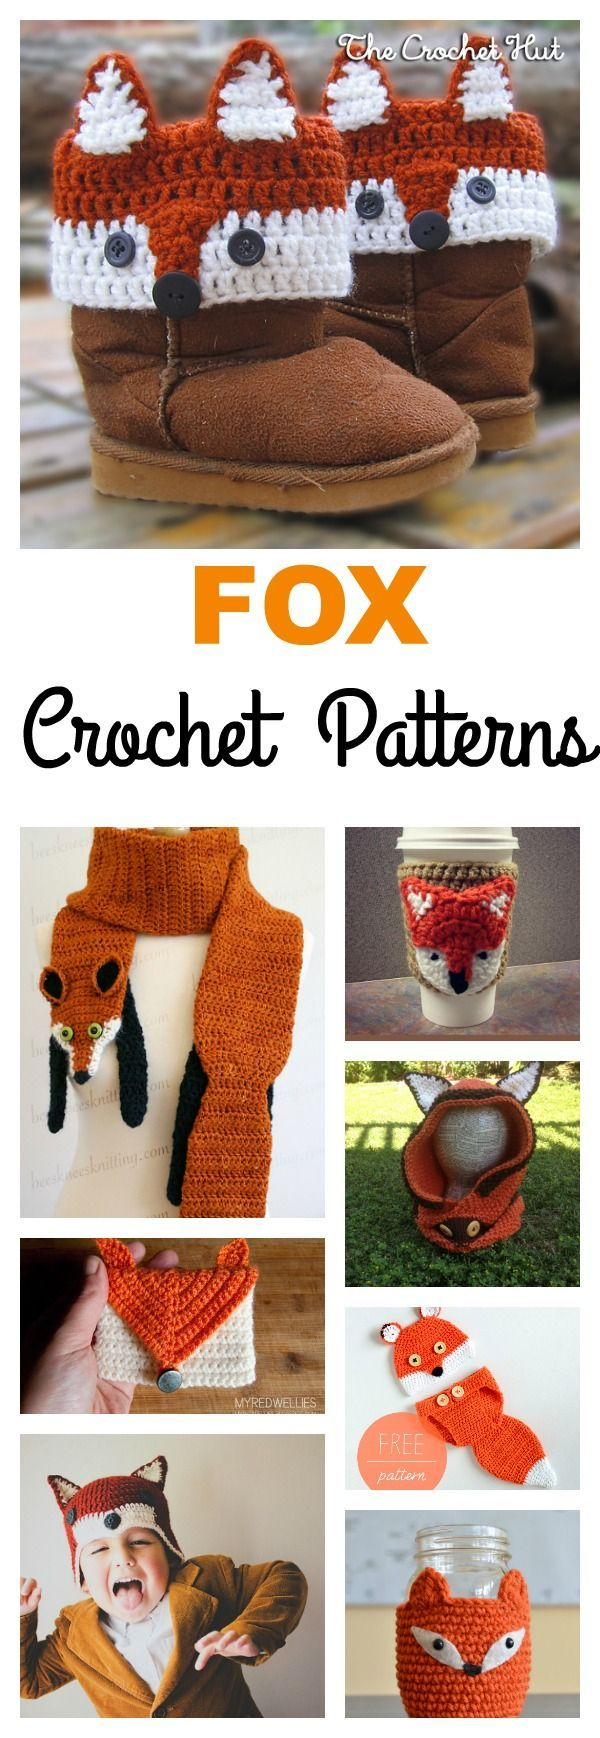 10 Crochet Fox Patterns | I'm obsessed with cute foxes, so this is the perfect collection for me